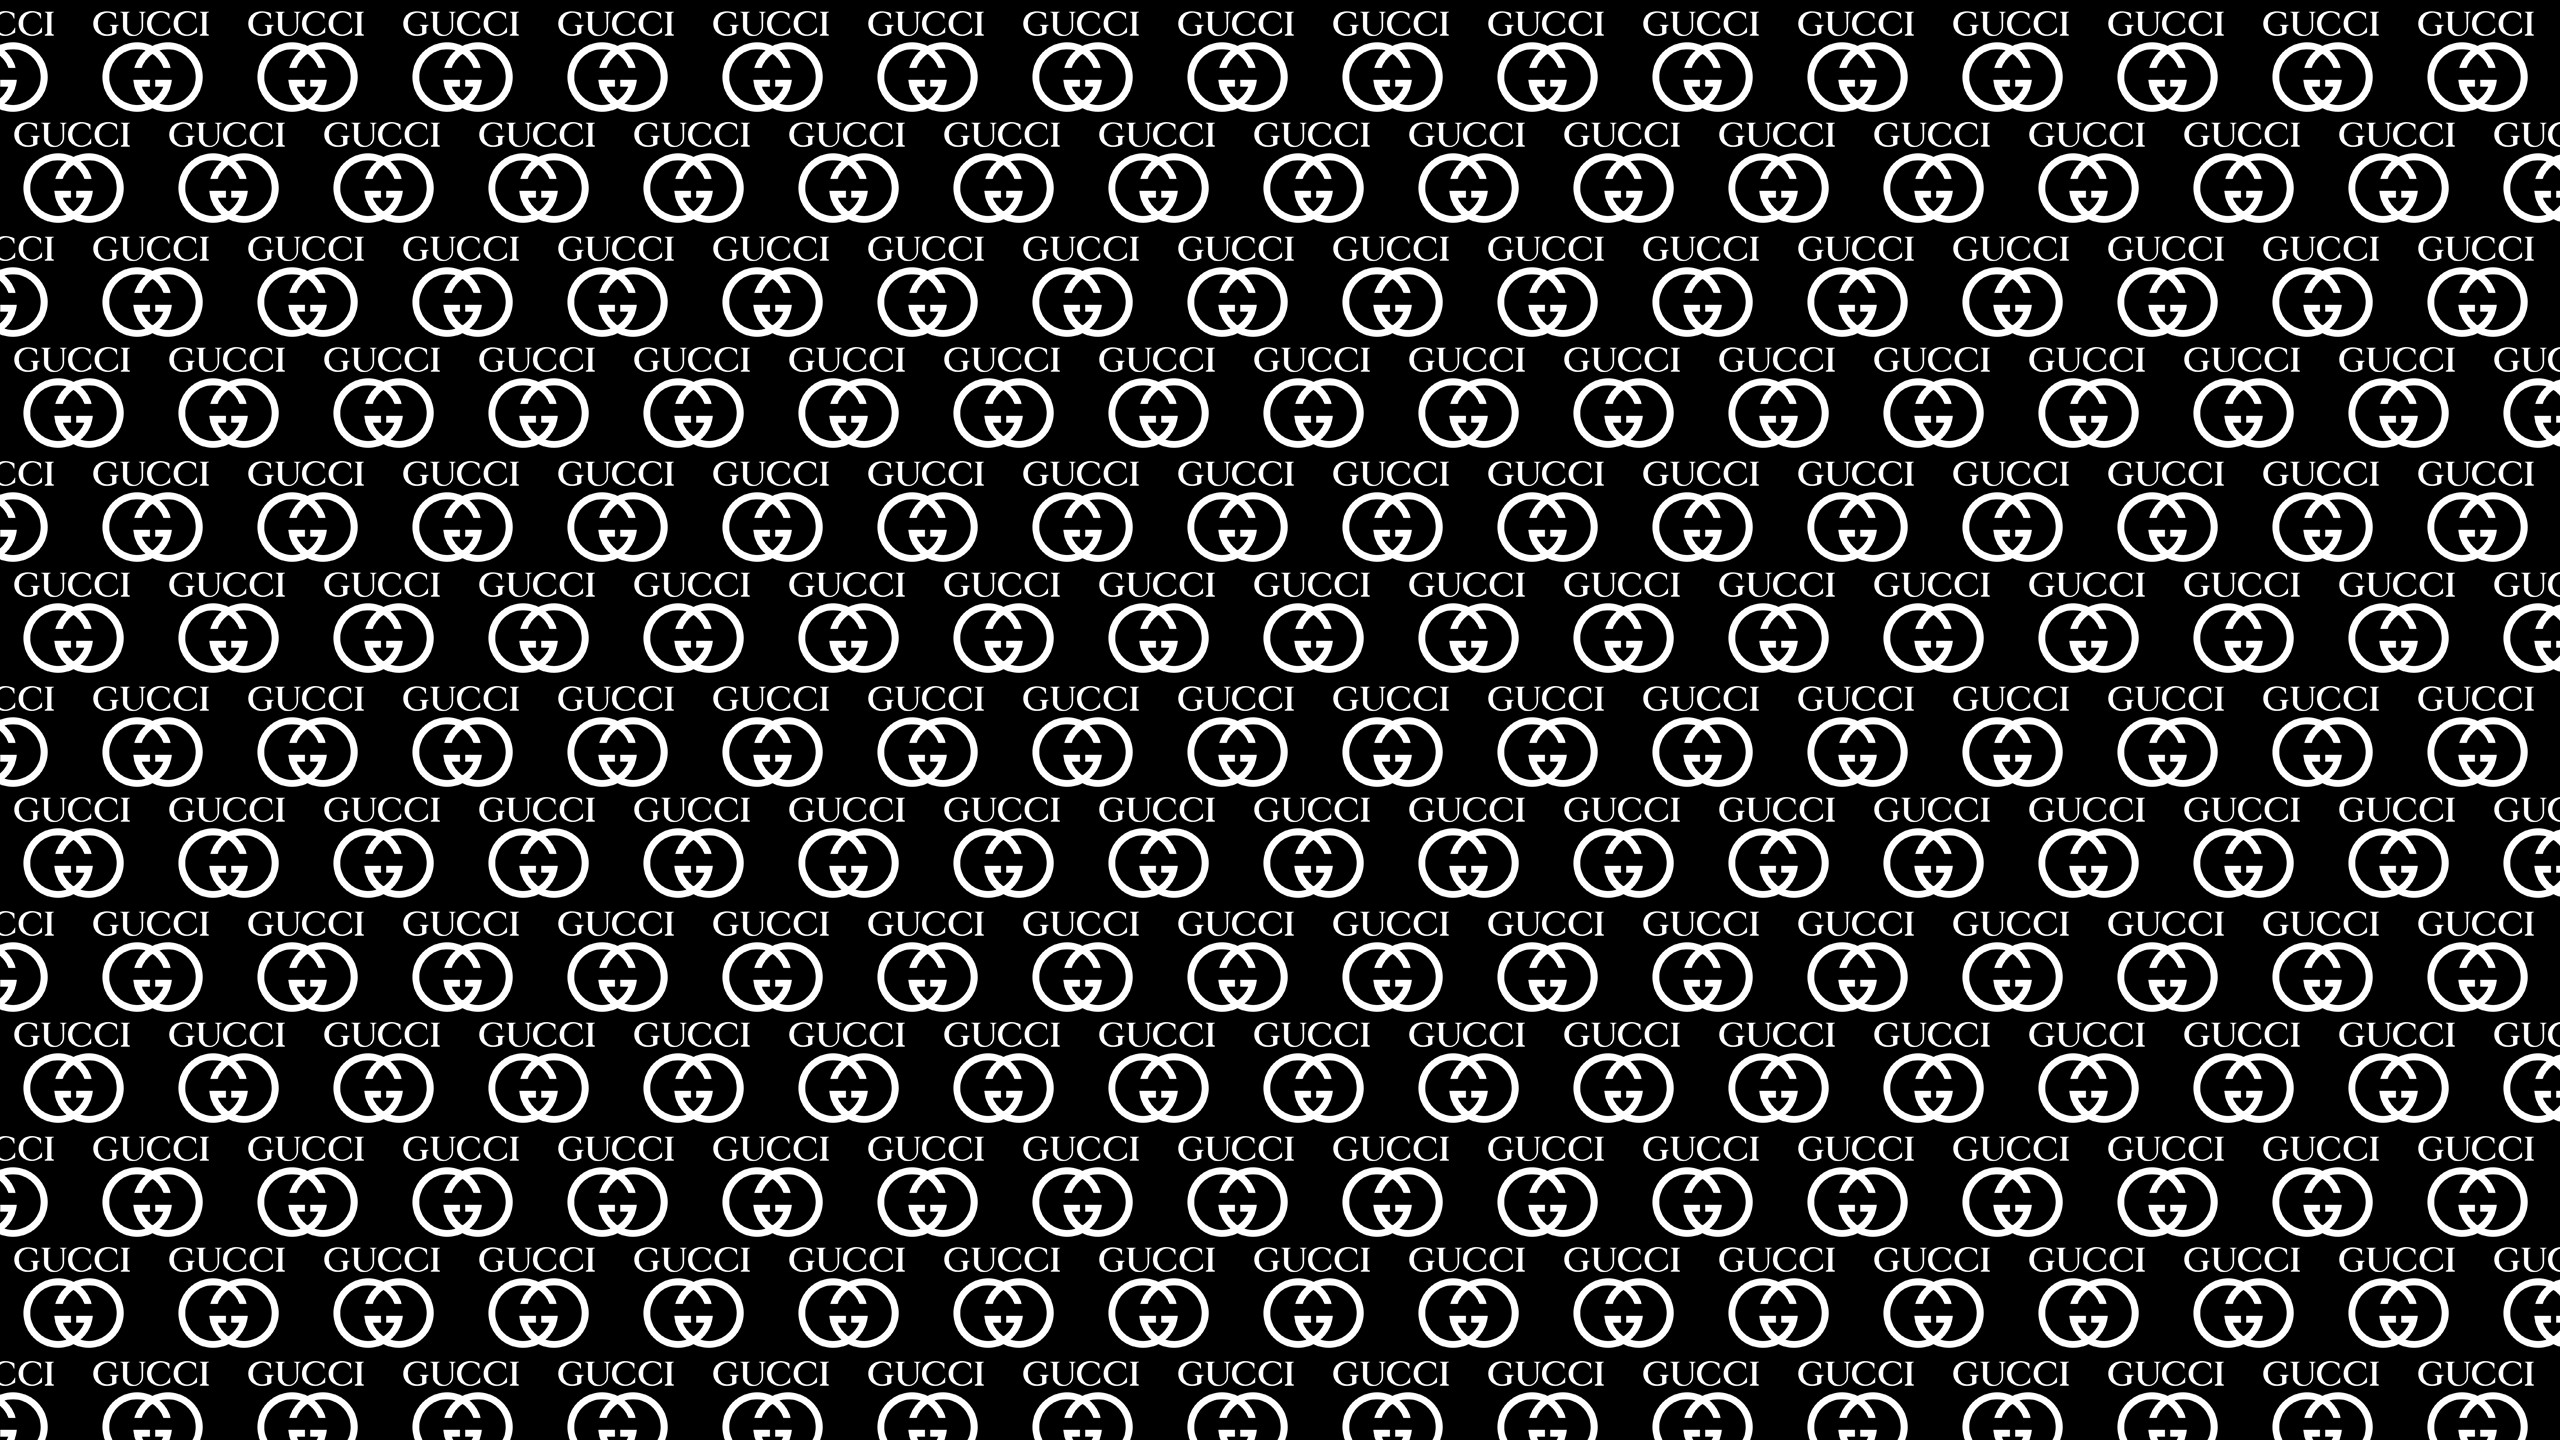 Gucci logo wallpaper for Wallpaper for a